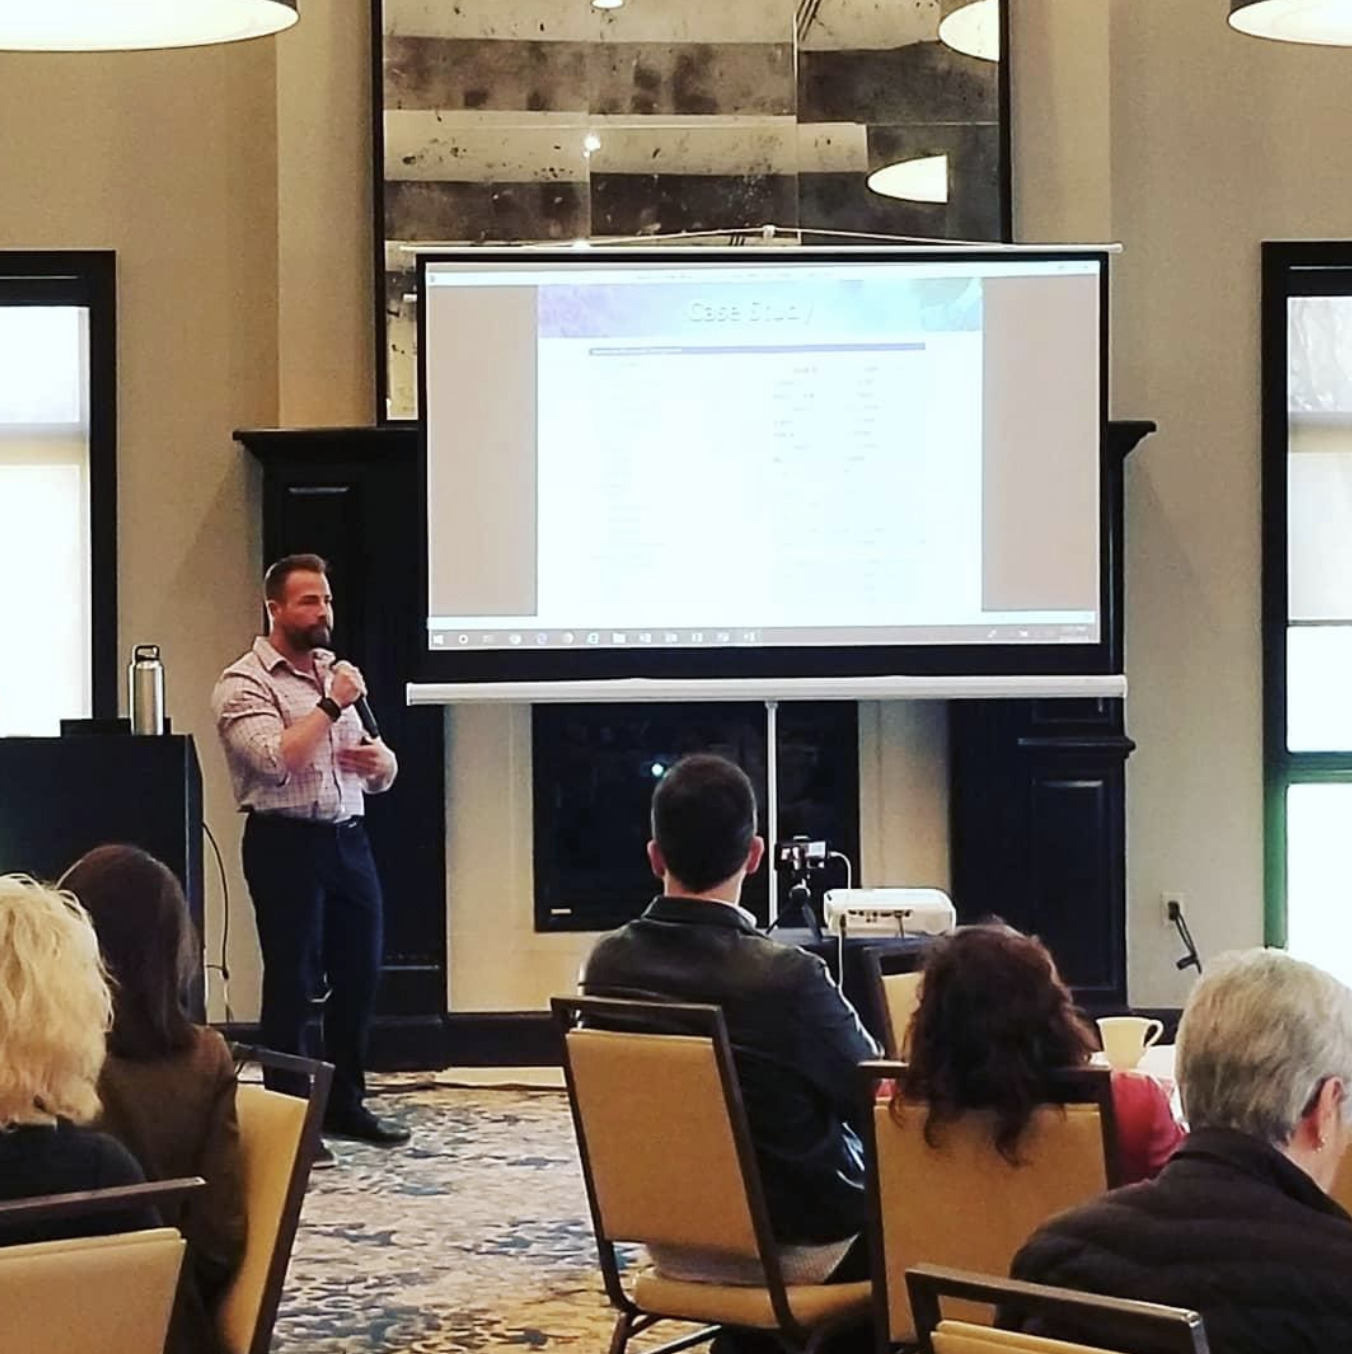 I had the privilege of lecturing to a group of various licensed practitioners on strategies for success with complex clinical cases at the Functional Medicine Meetup in Dallas Texas (Spring 2019)